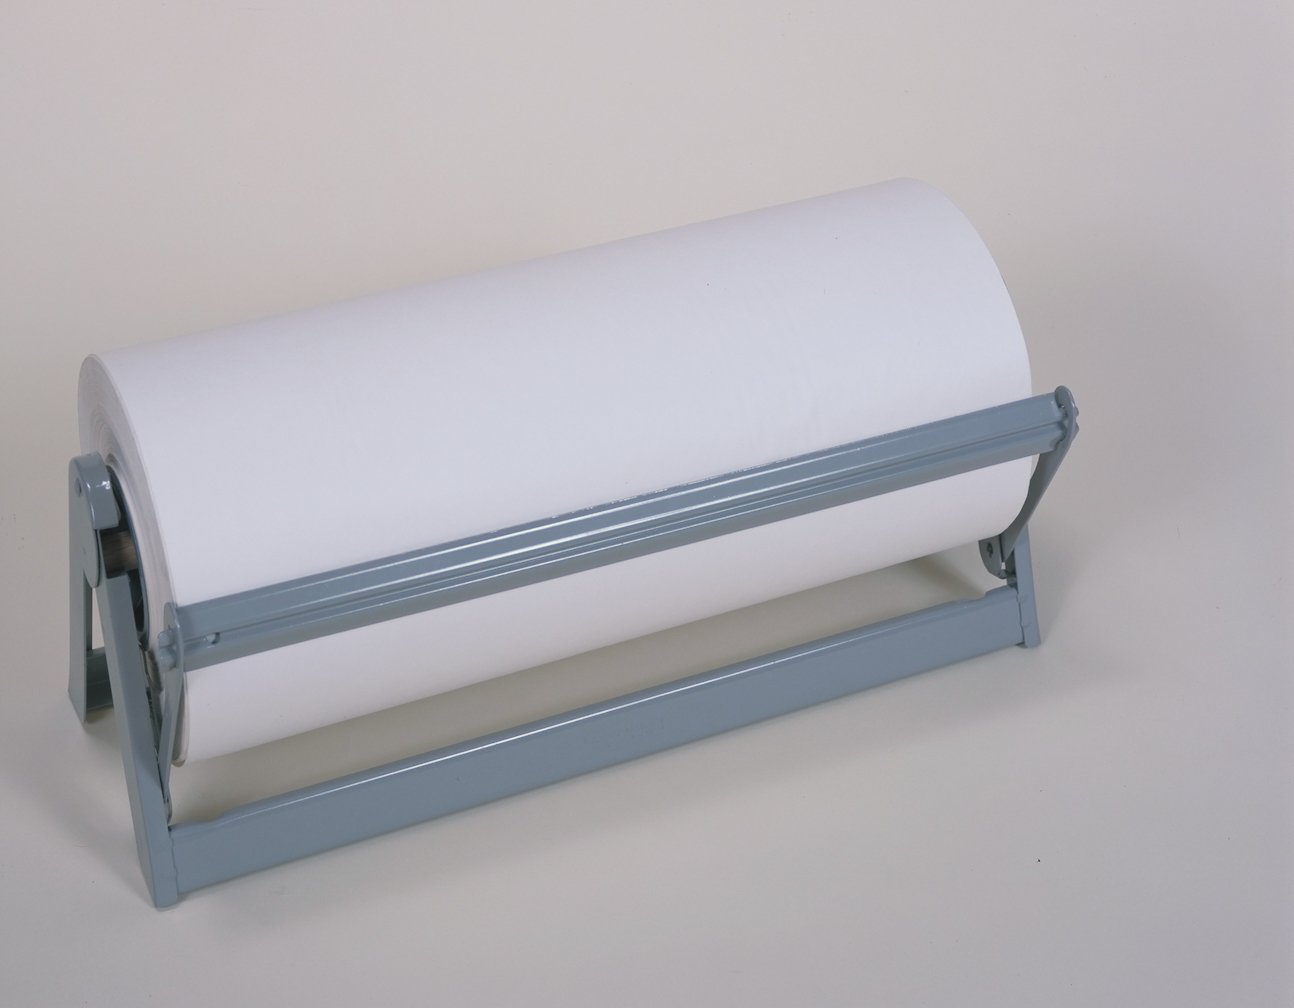 30'' Standard All In One Paper Roll Dispenser (2 Dispensers) - Bulman-A500-30 by Miller Supply Inc.